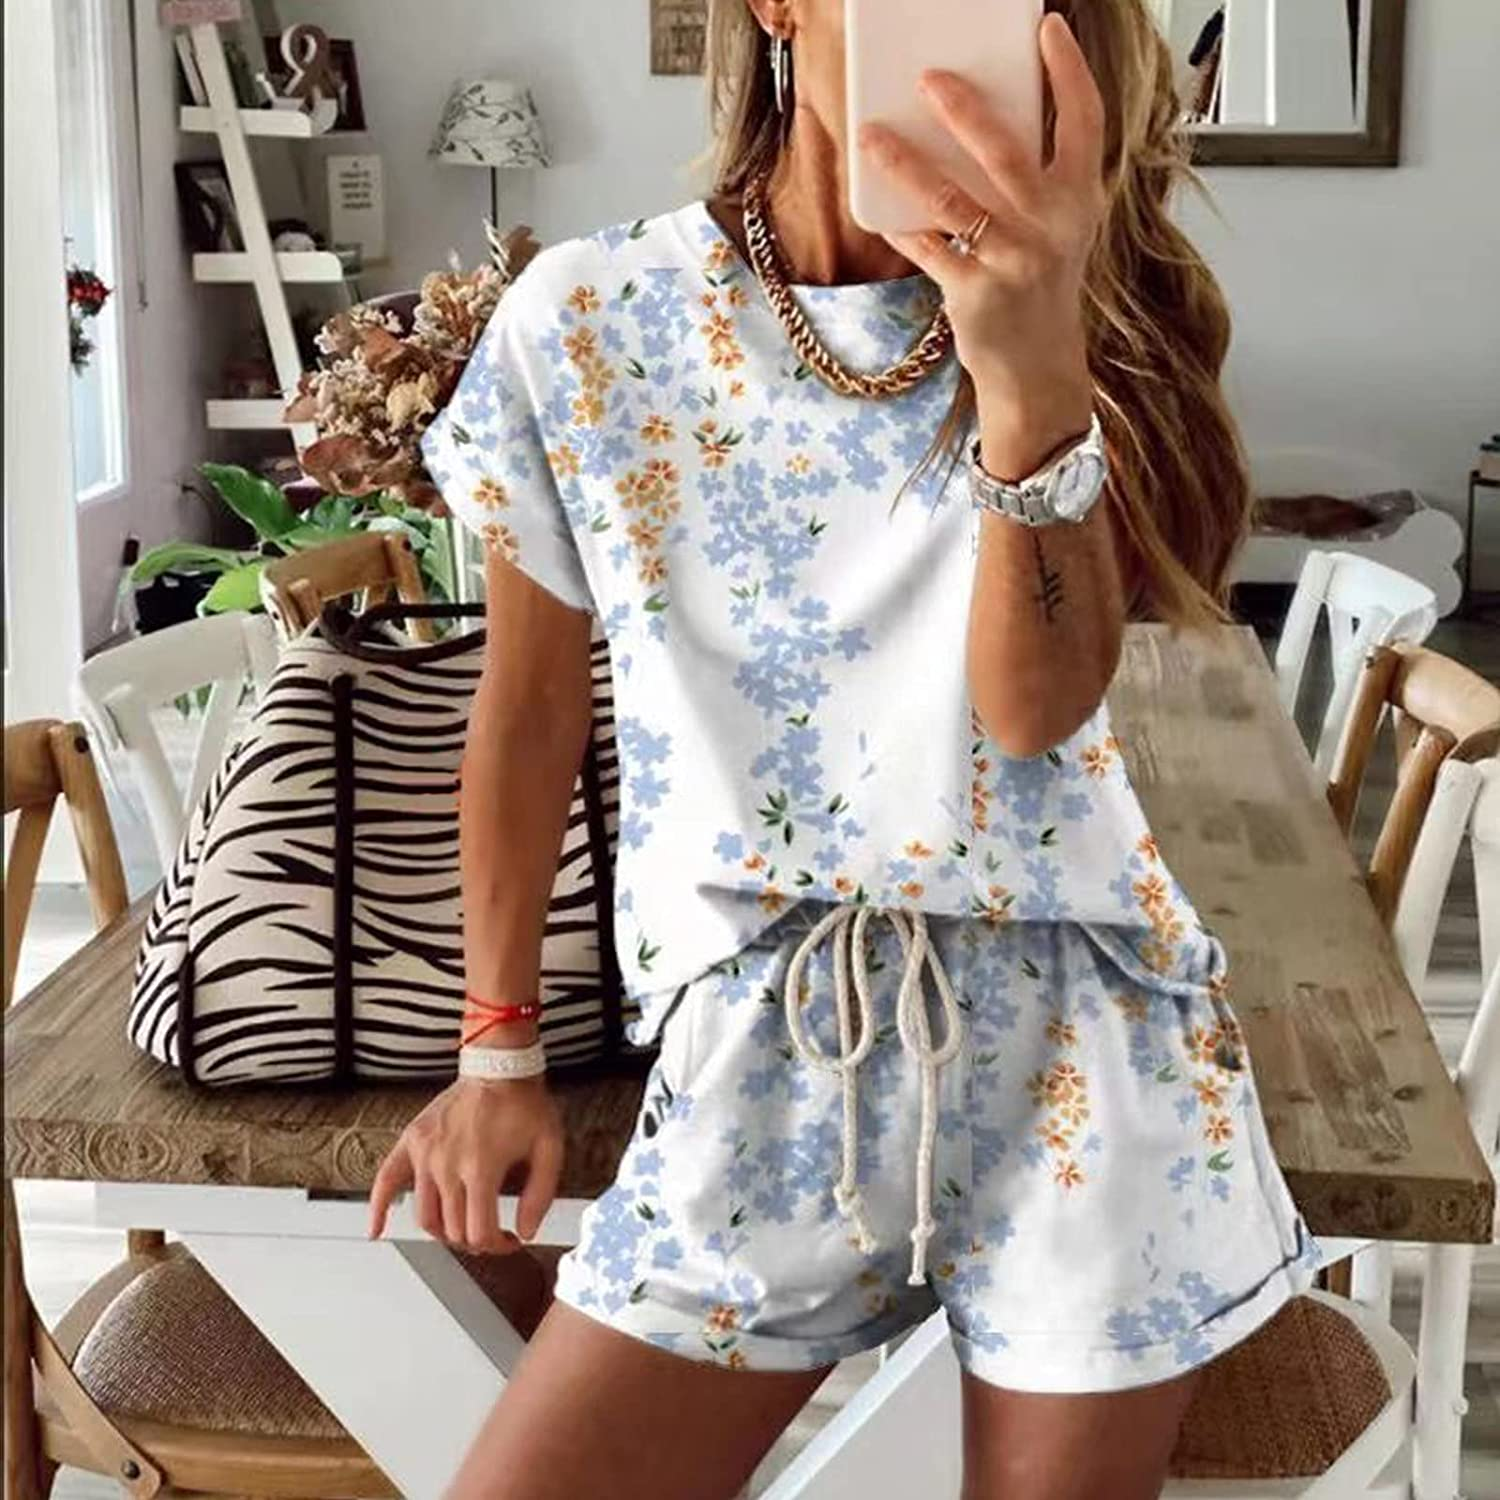 Fankle Womens Summer Casual Pajamas Set, Two Piece Outfits for Women Tie Dye 2 Piece Outfits Lounge Sets Sleepwear